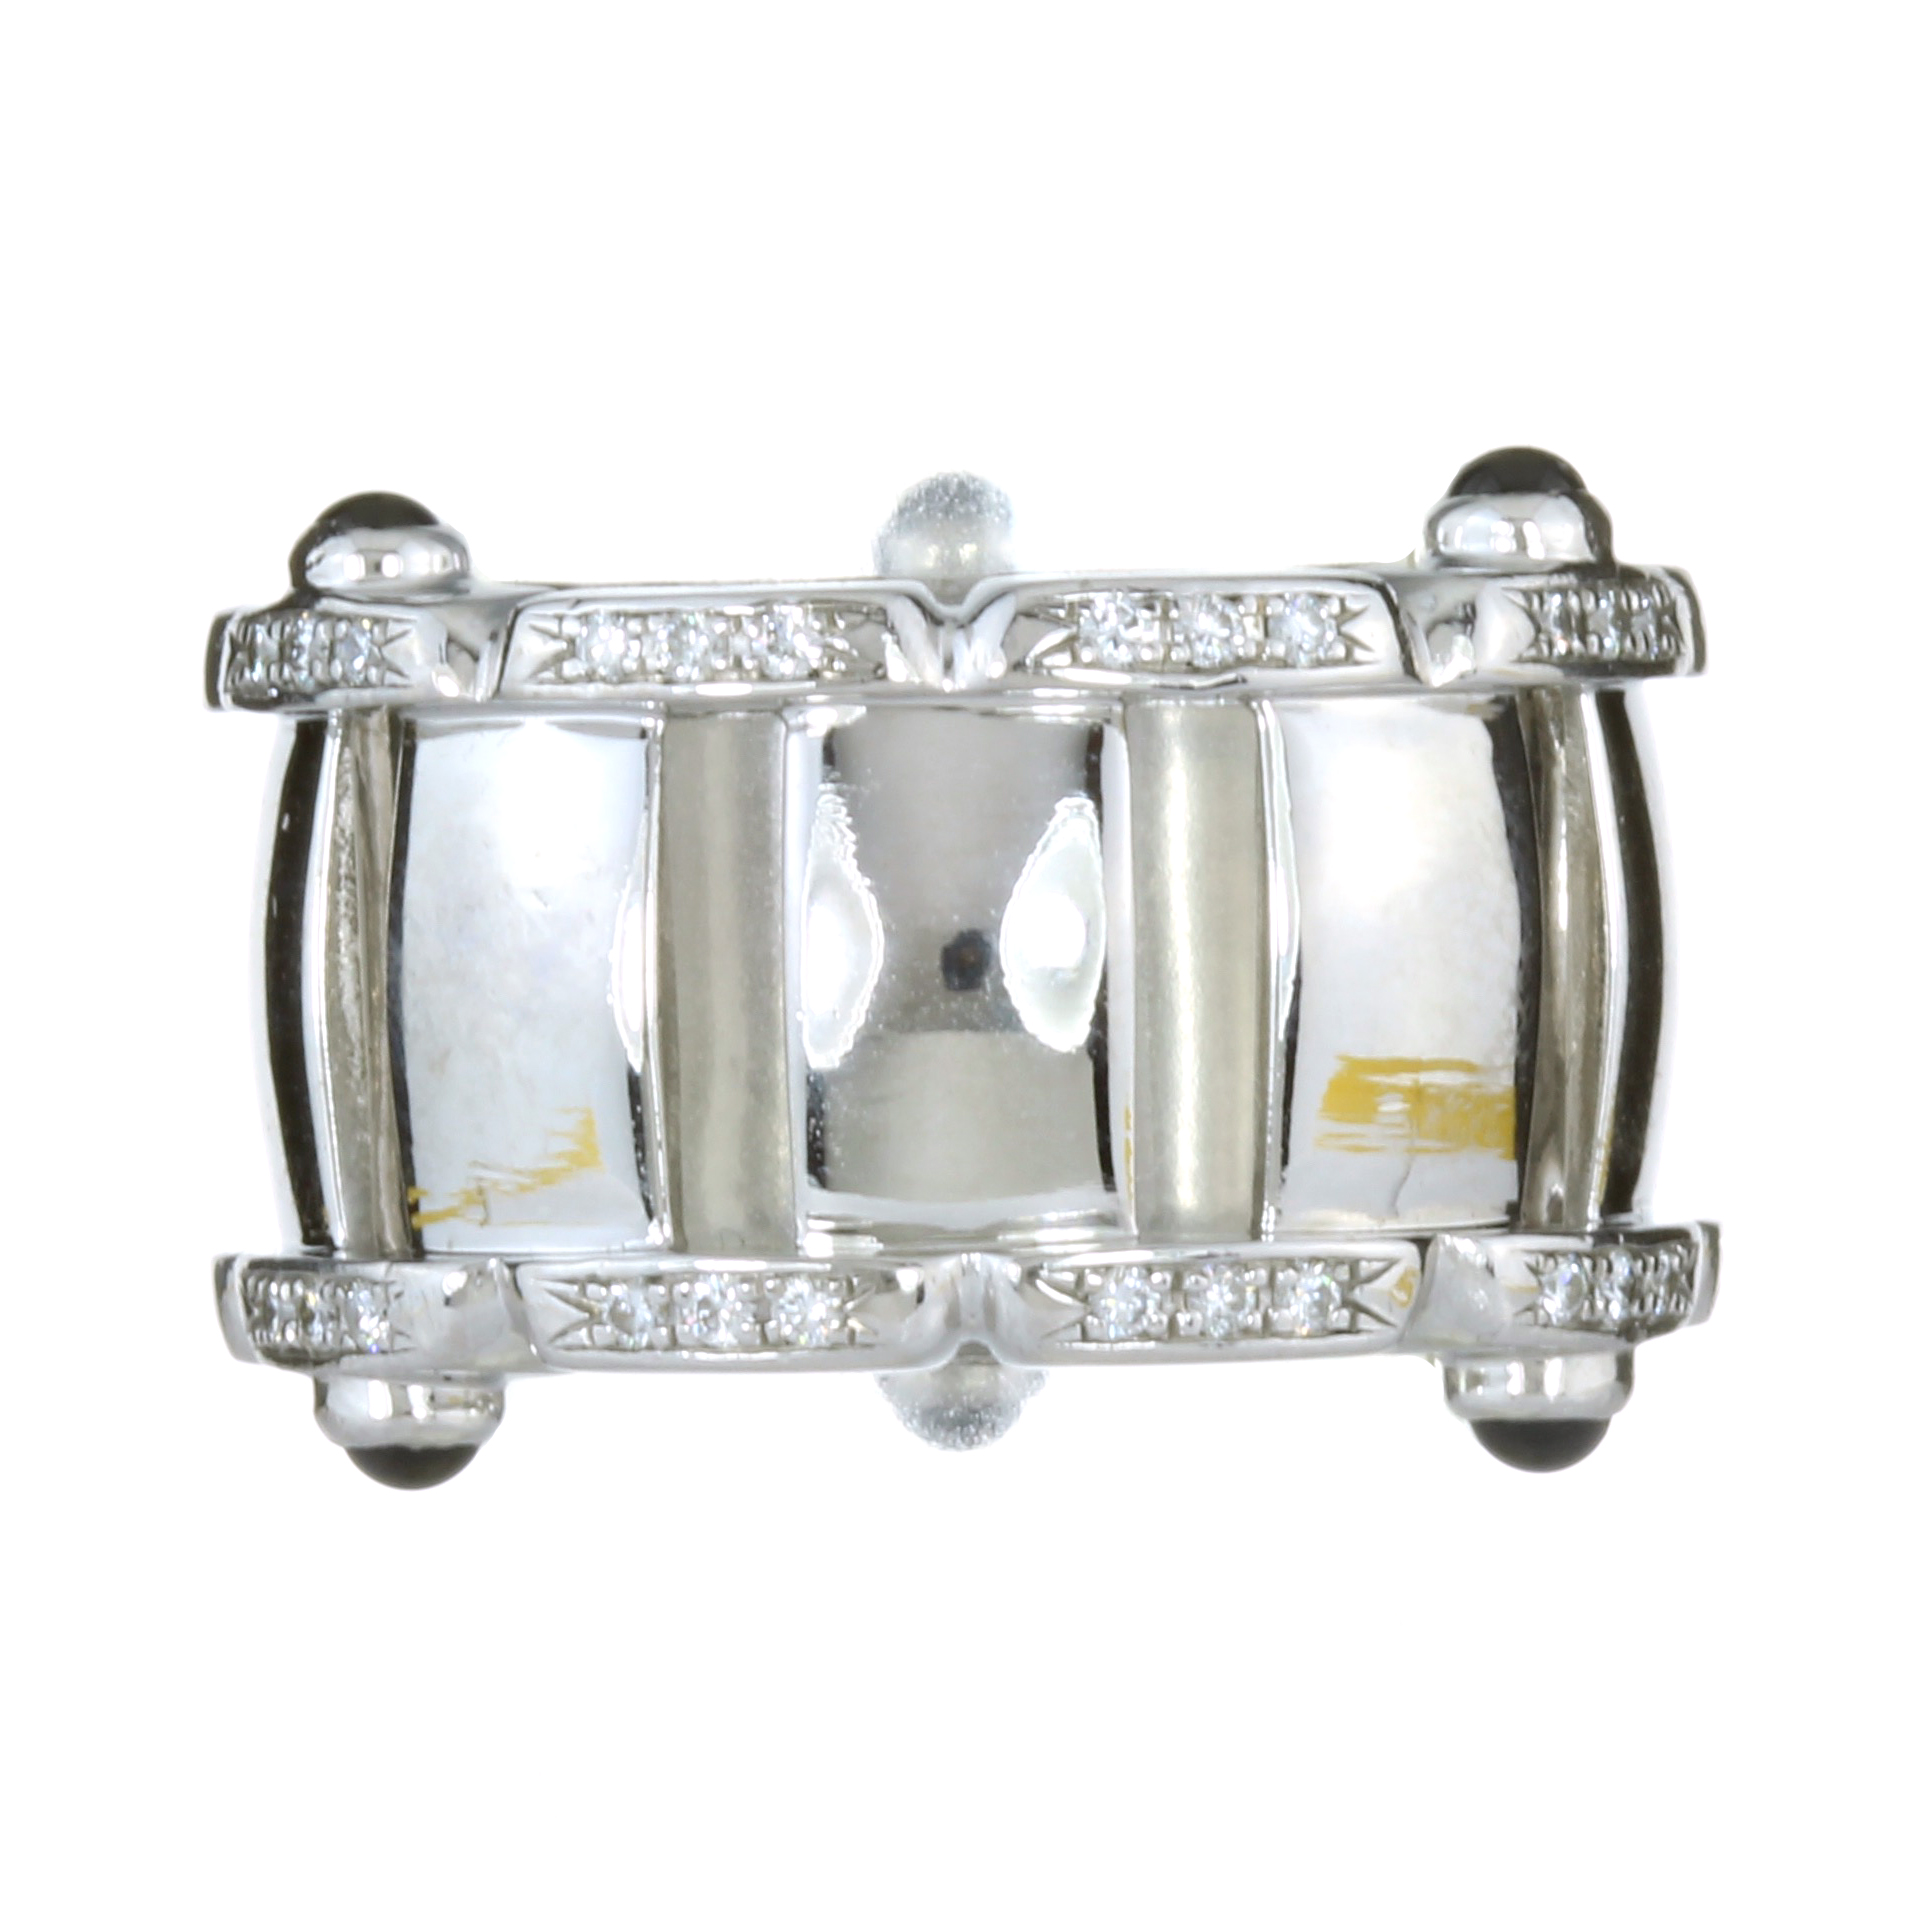 A SAPPHIRE AND DIAMOND TWENTY-4 RING BY PATEK PHILIPPE in 18ct white gold, designed with off-set